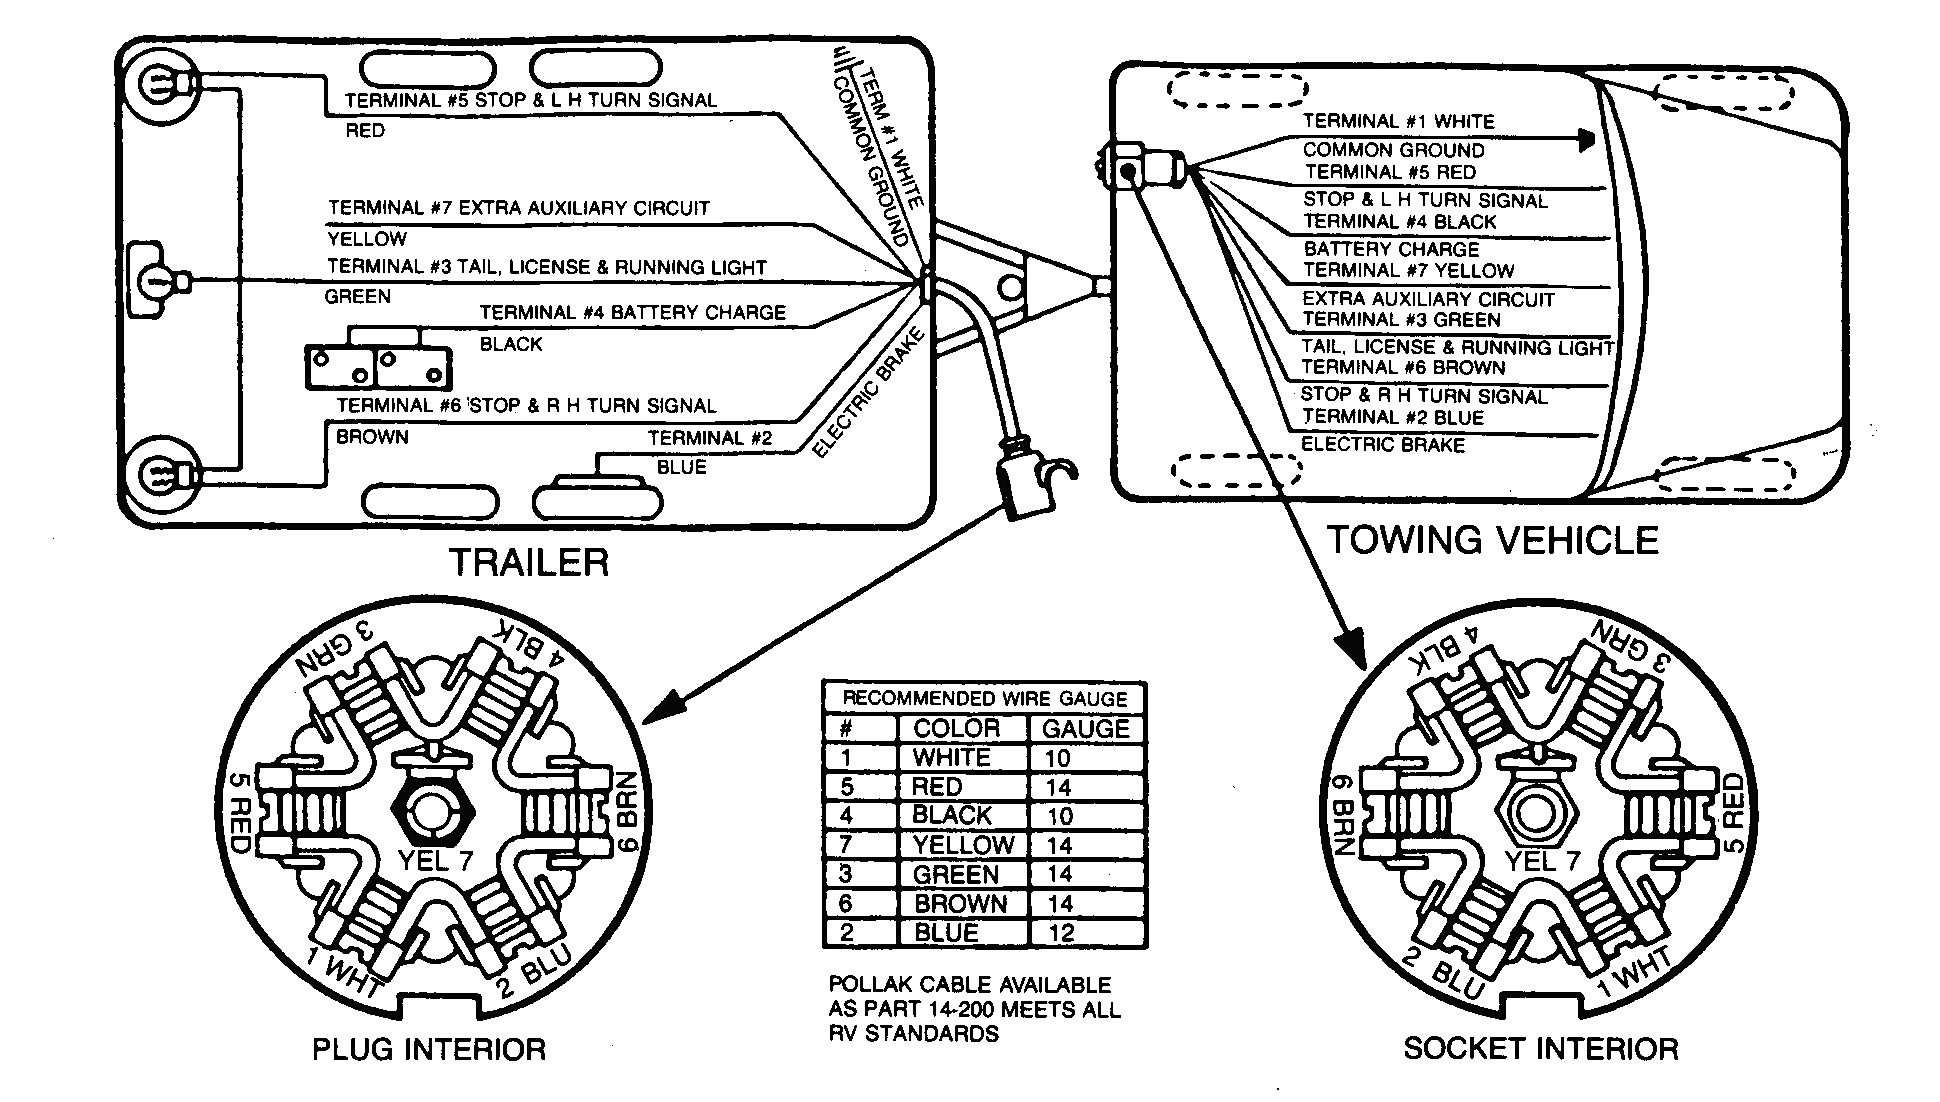 Gm 7 Way Trailer Plug Wiring Diagram | Wiring Diagram - 7 Way Trailer Wiring Diagram Gm